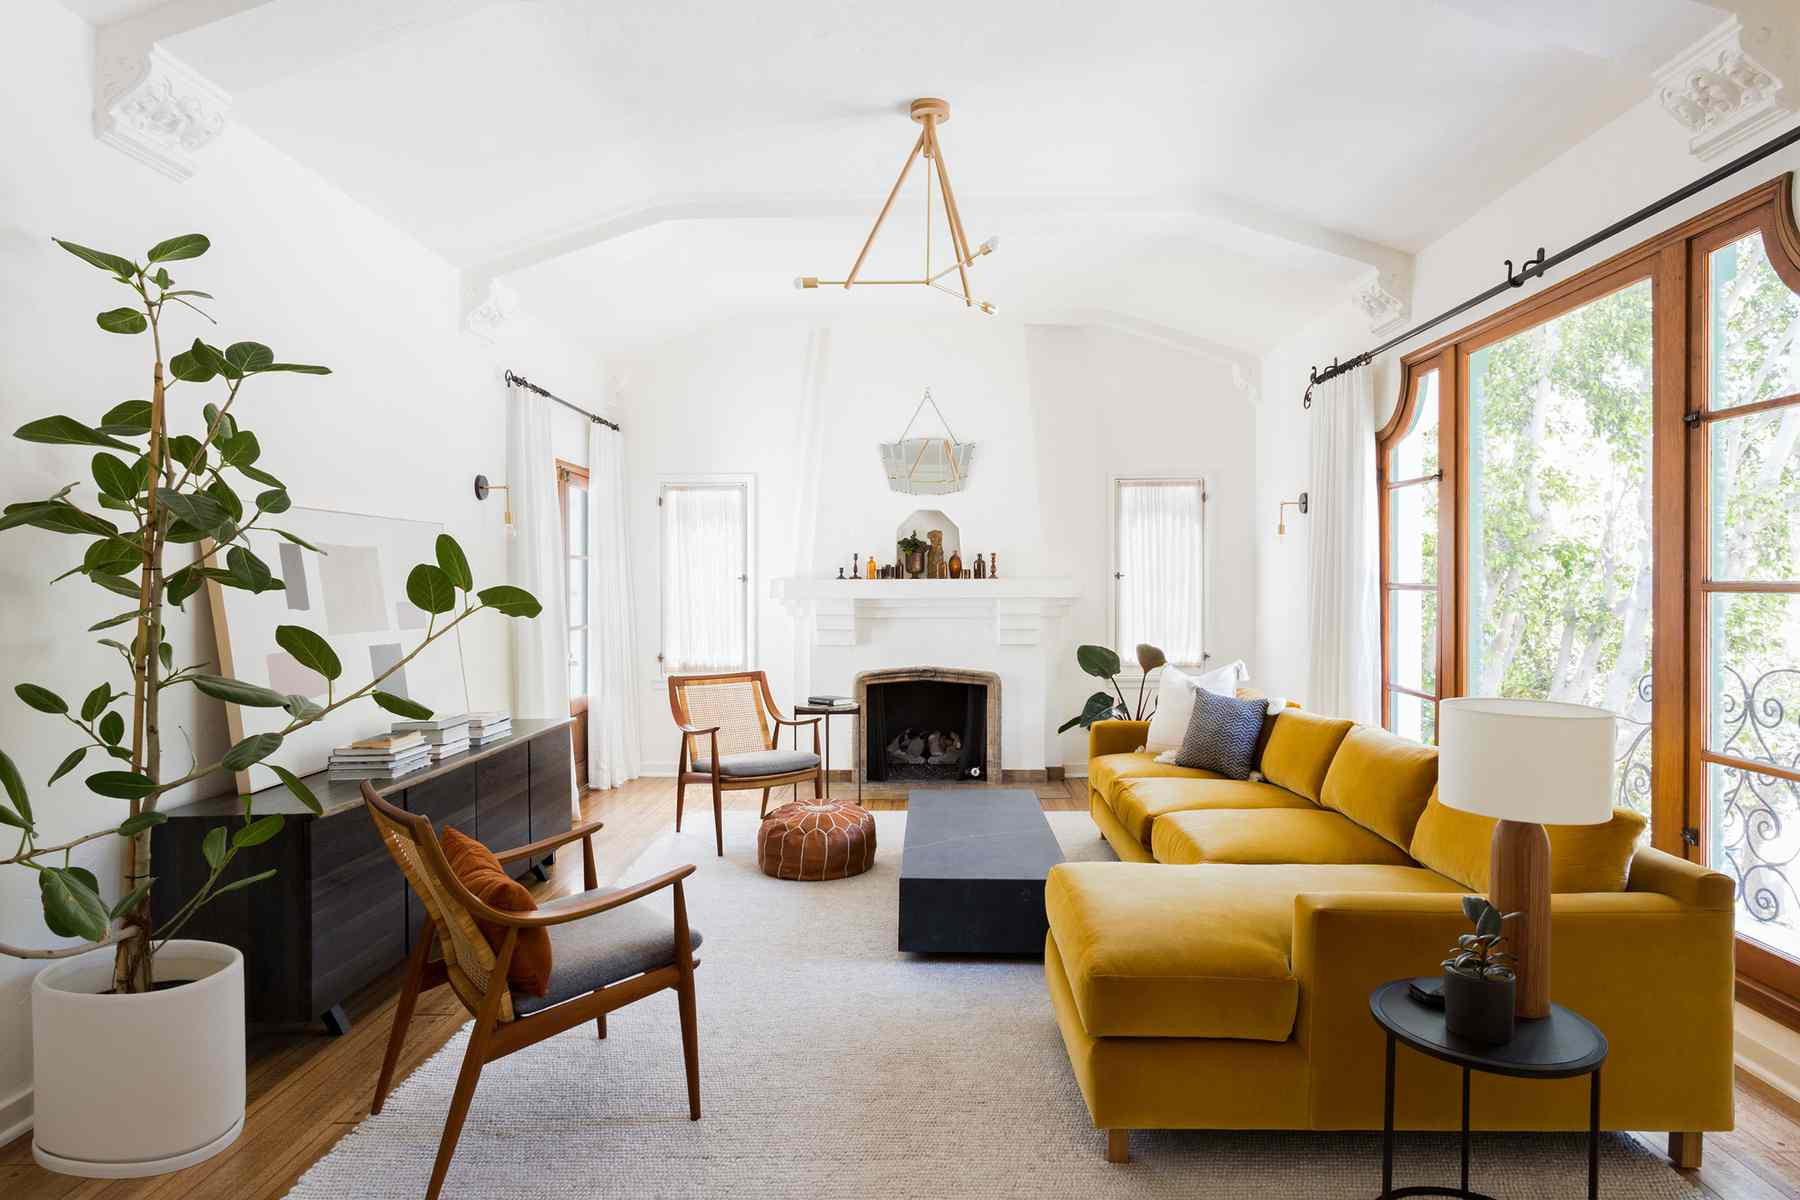 Cozy living room with mustard velvet sofa and plenty of light sources